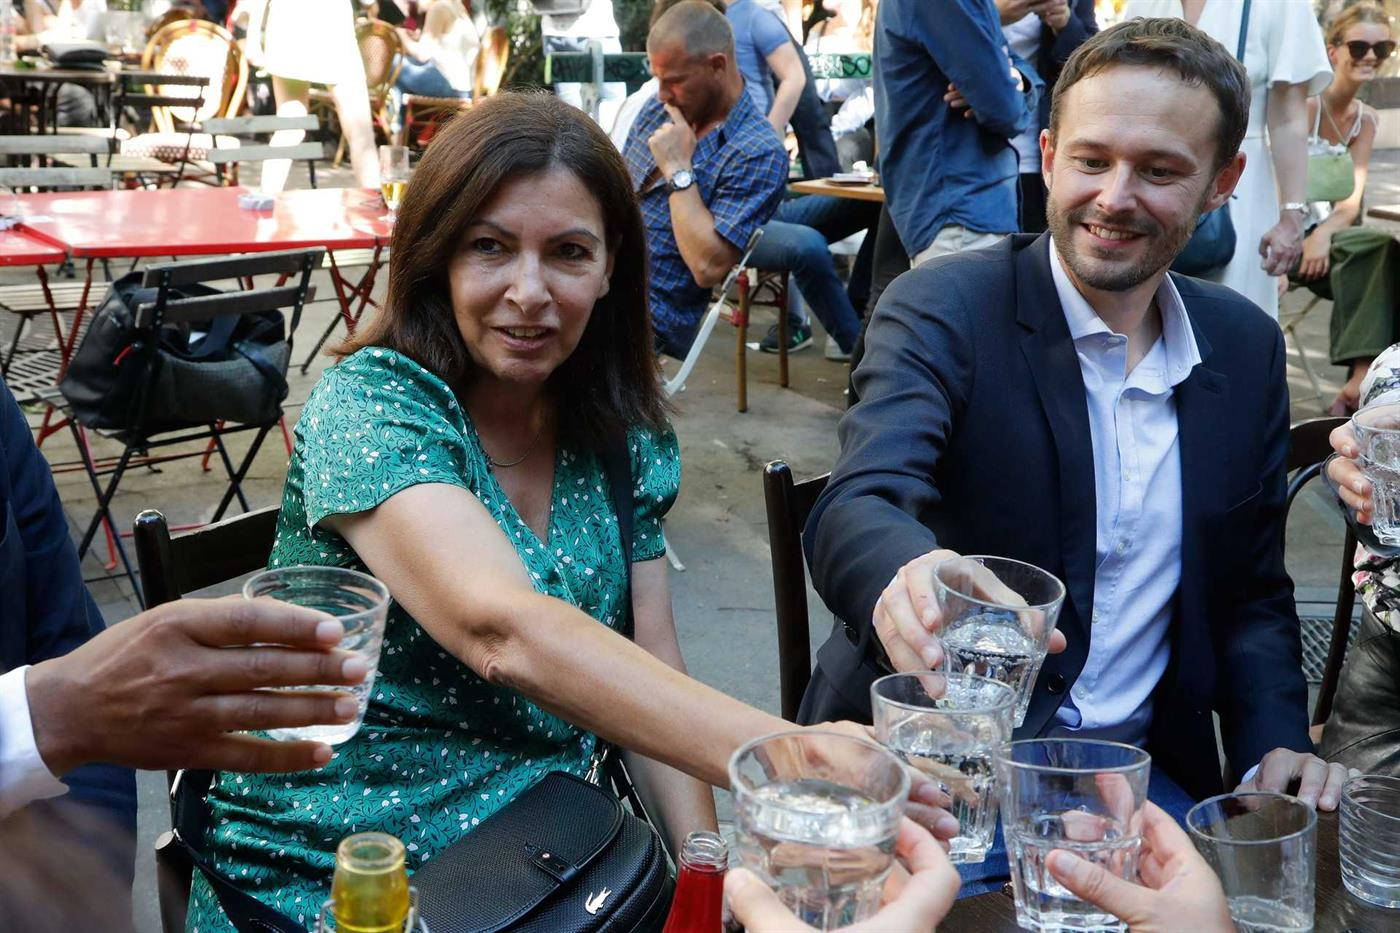 Socialist Anne Hidalgo, current mayor of Paris, toasts with David Belliard, of the Greens